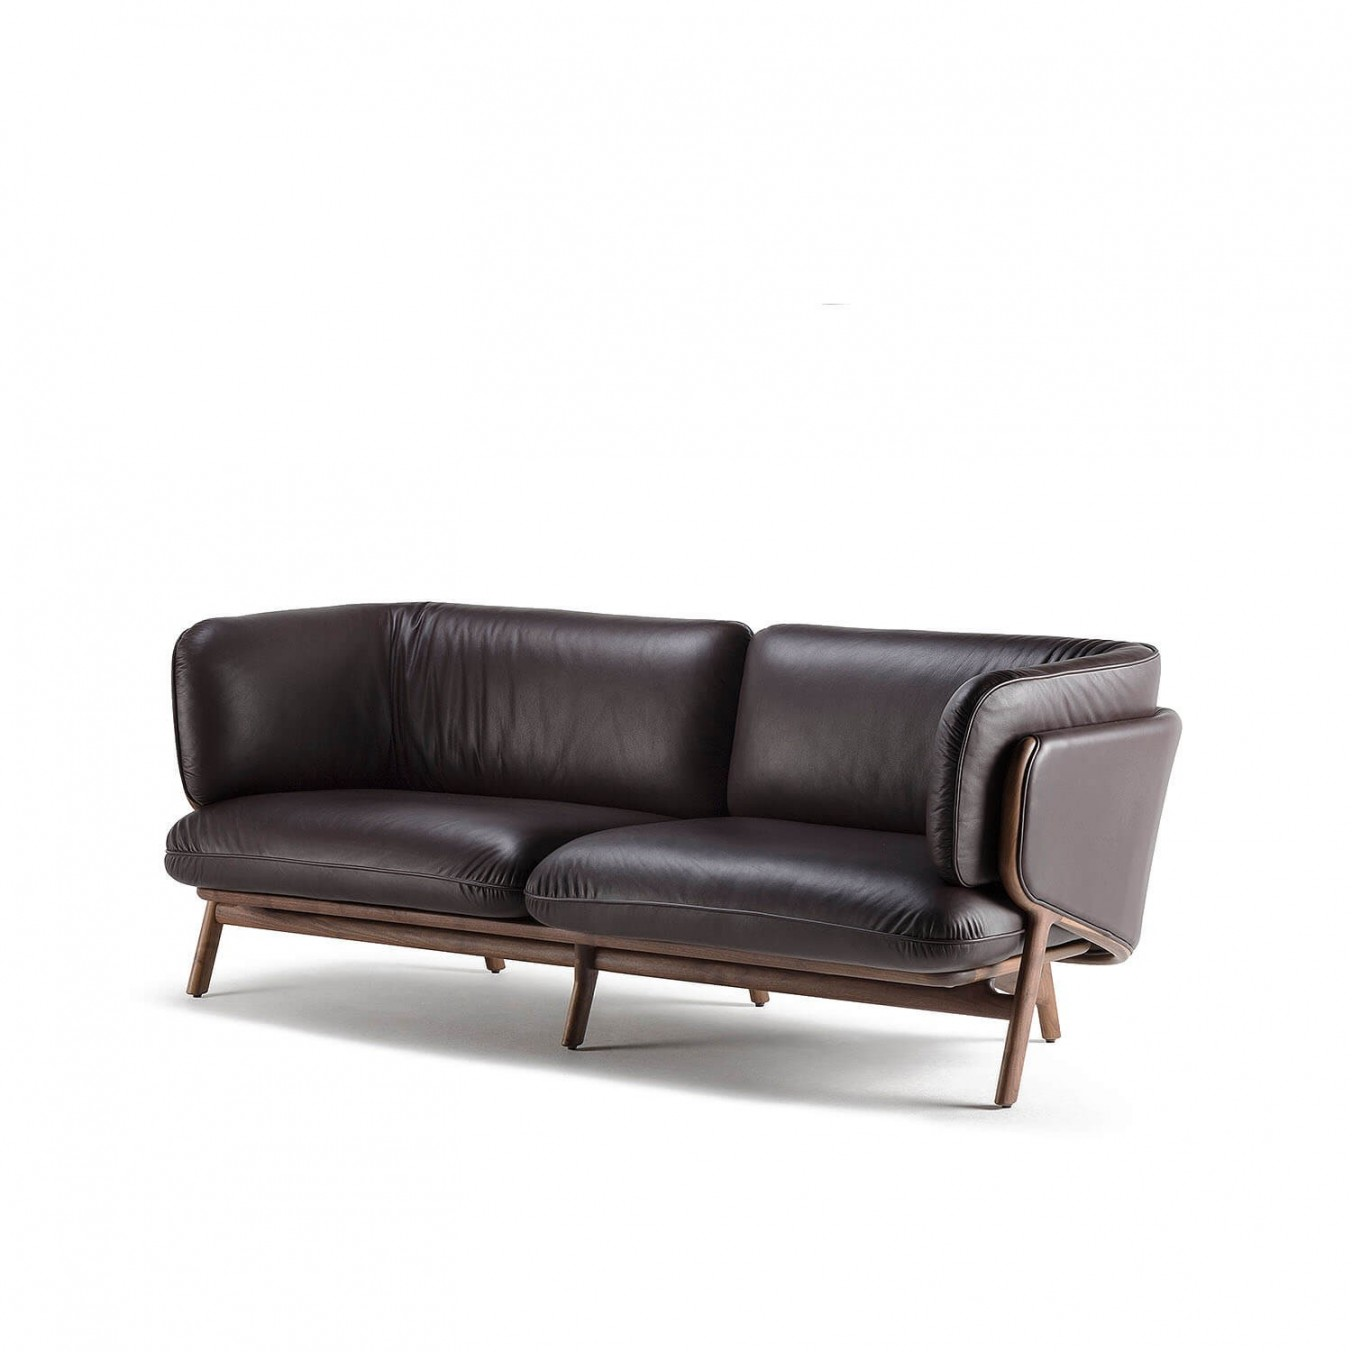 A black leather chair Description automatically generated